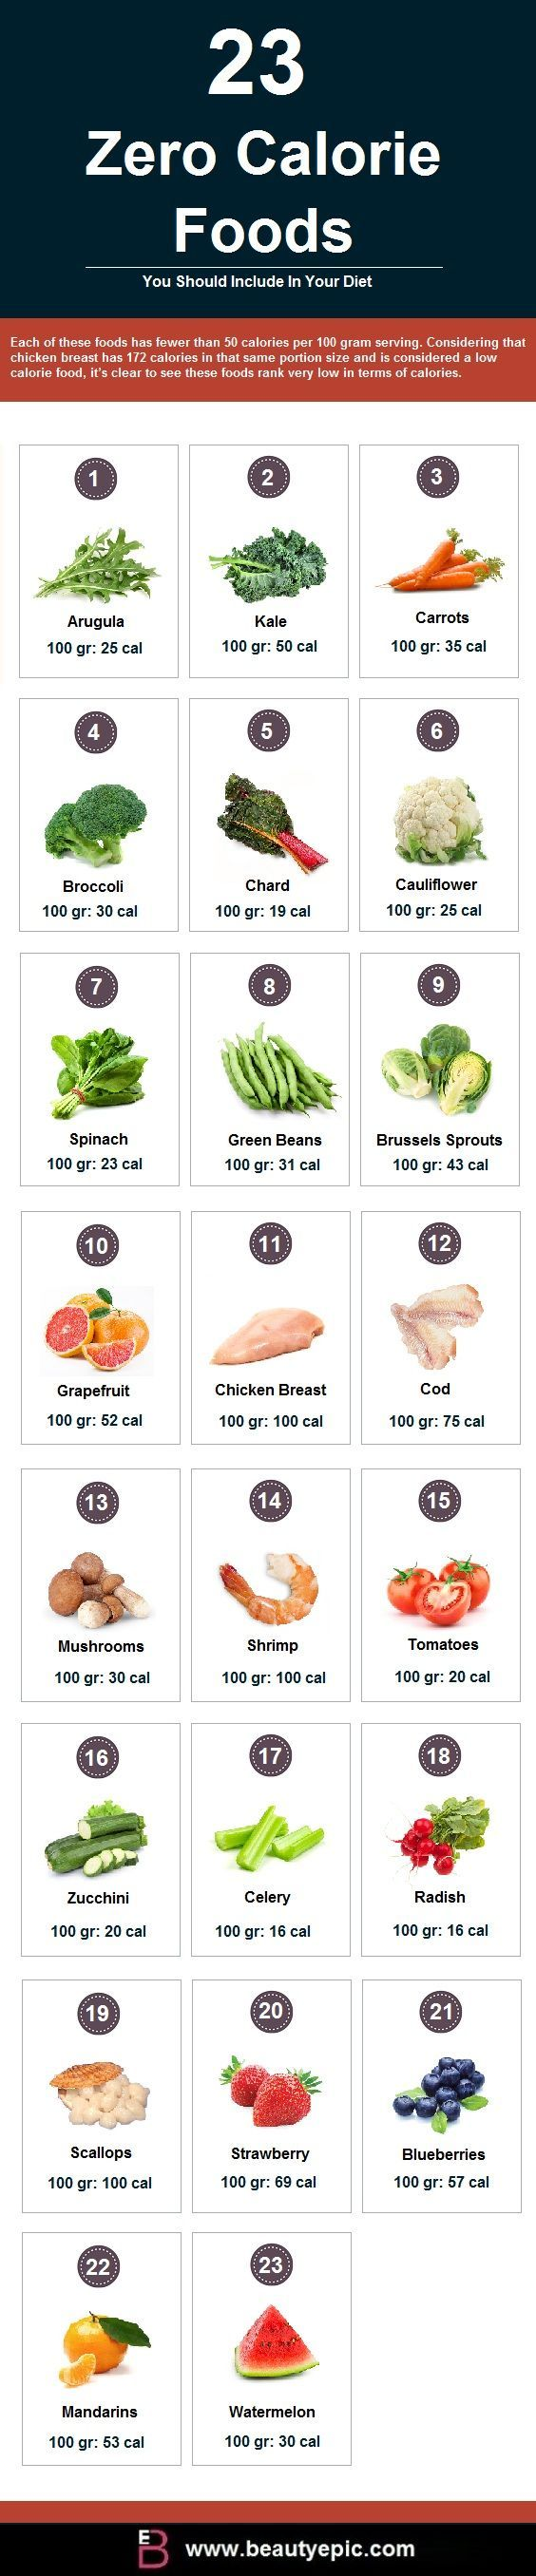 Zero Calorie Foods: Zero Calorie foods or negative calorie foods has always been the choice of most of us to maintain good health